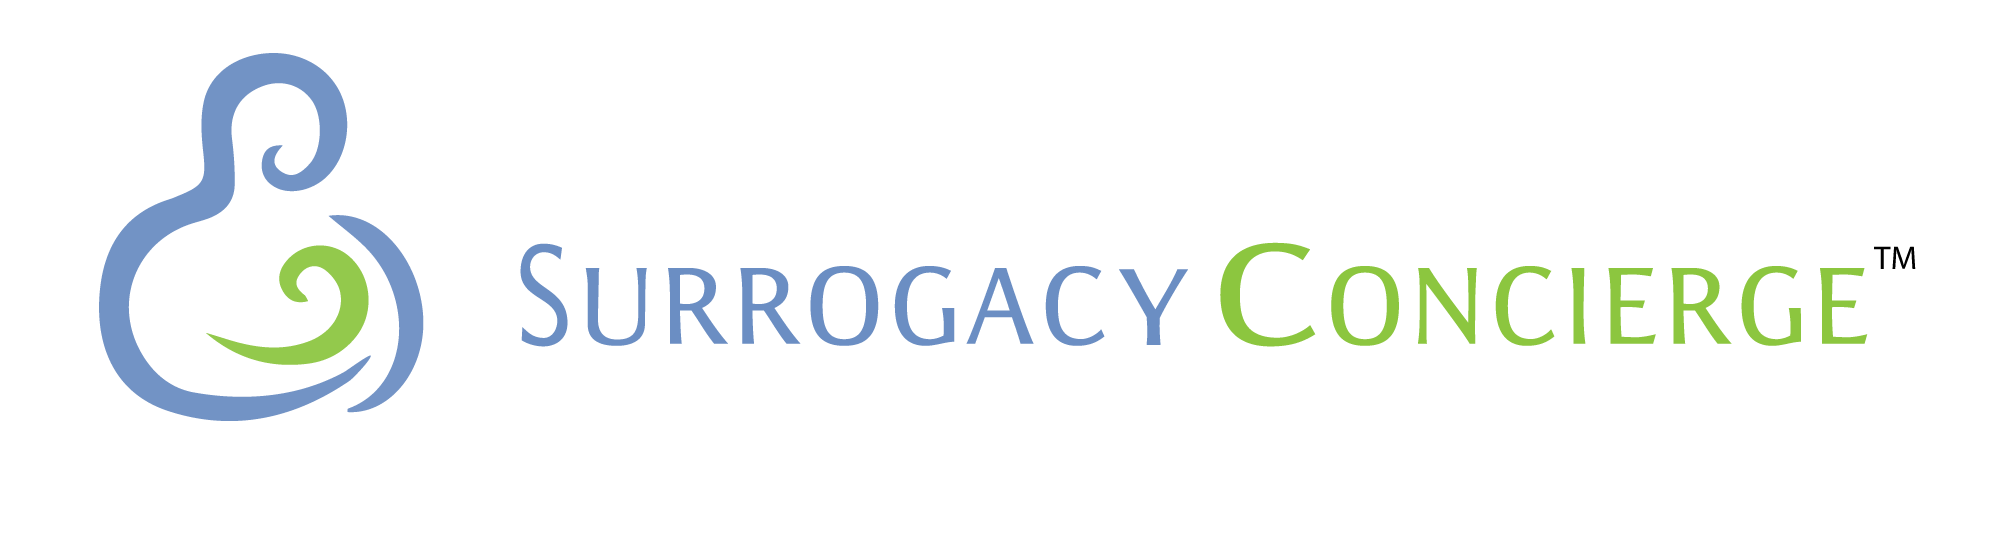 Surrogacy Concierge